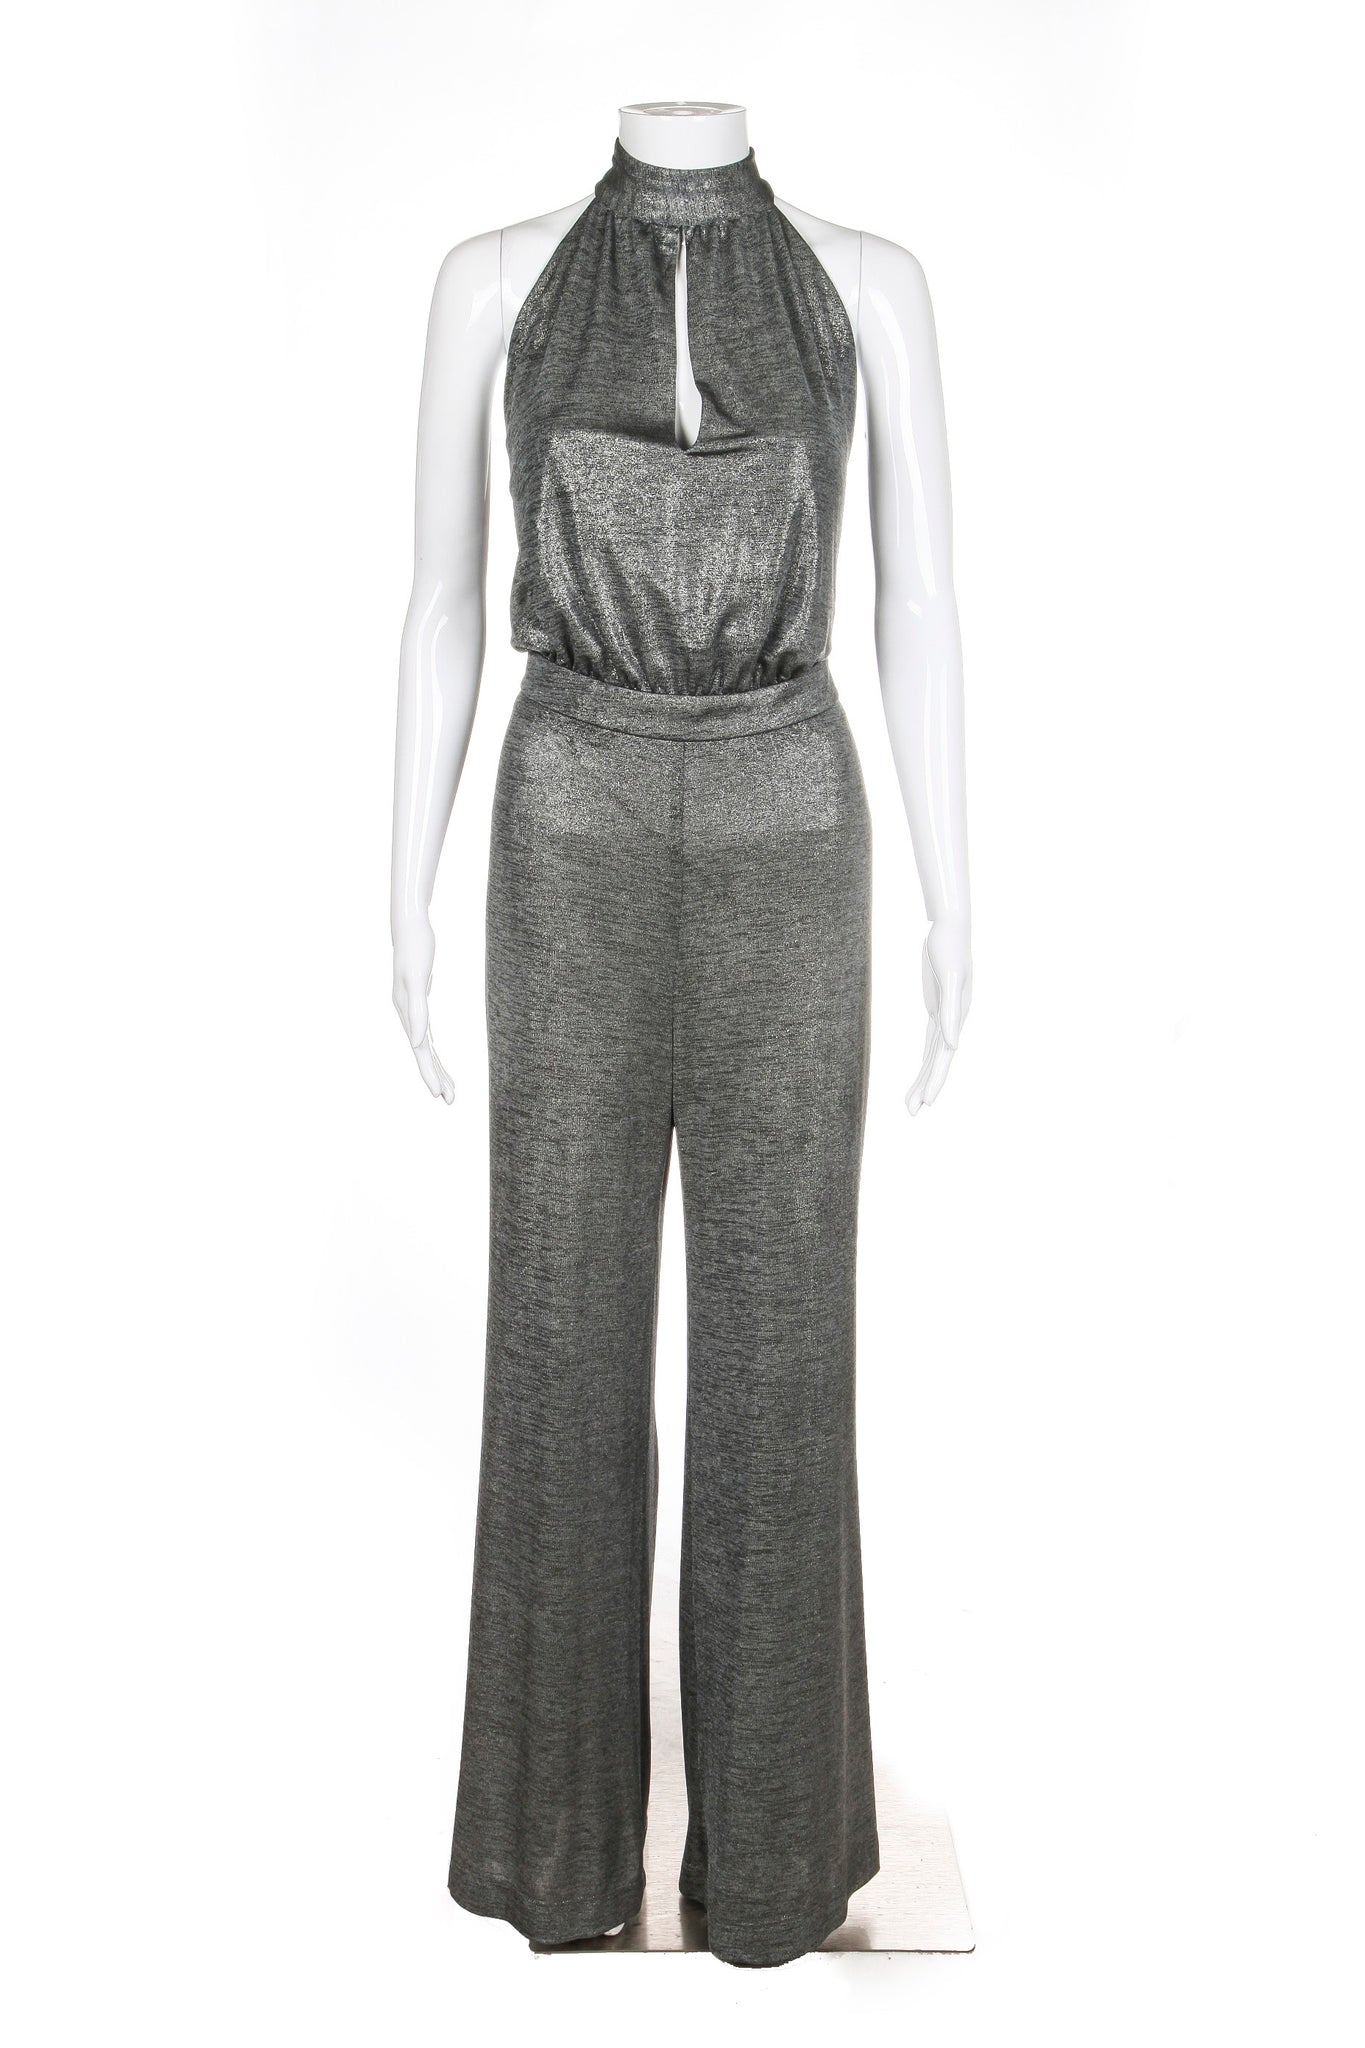 New ABS ALLEN SCHWARTZ Jumpsuit Medium Metallic Silver Halter Style-hunting